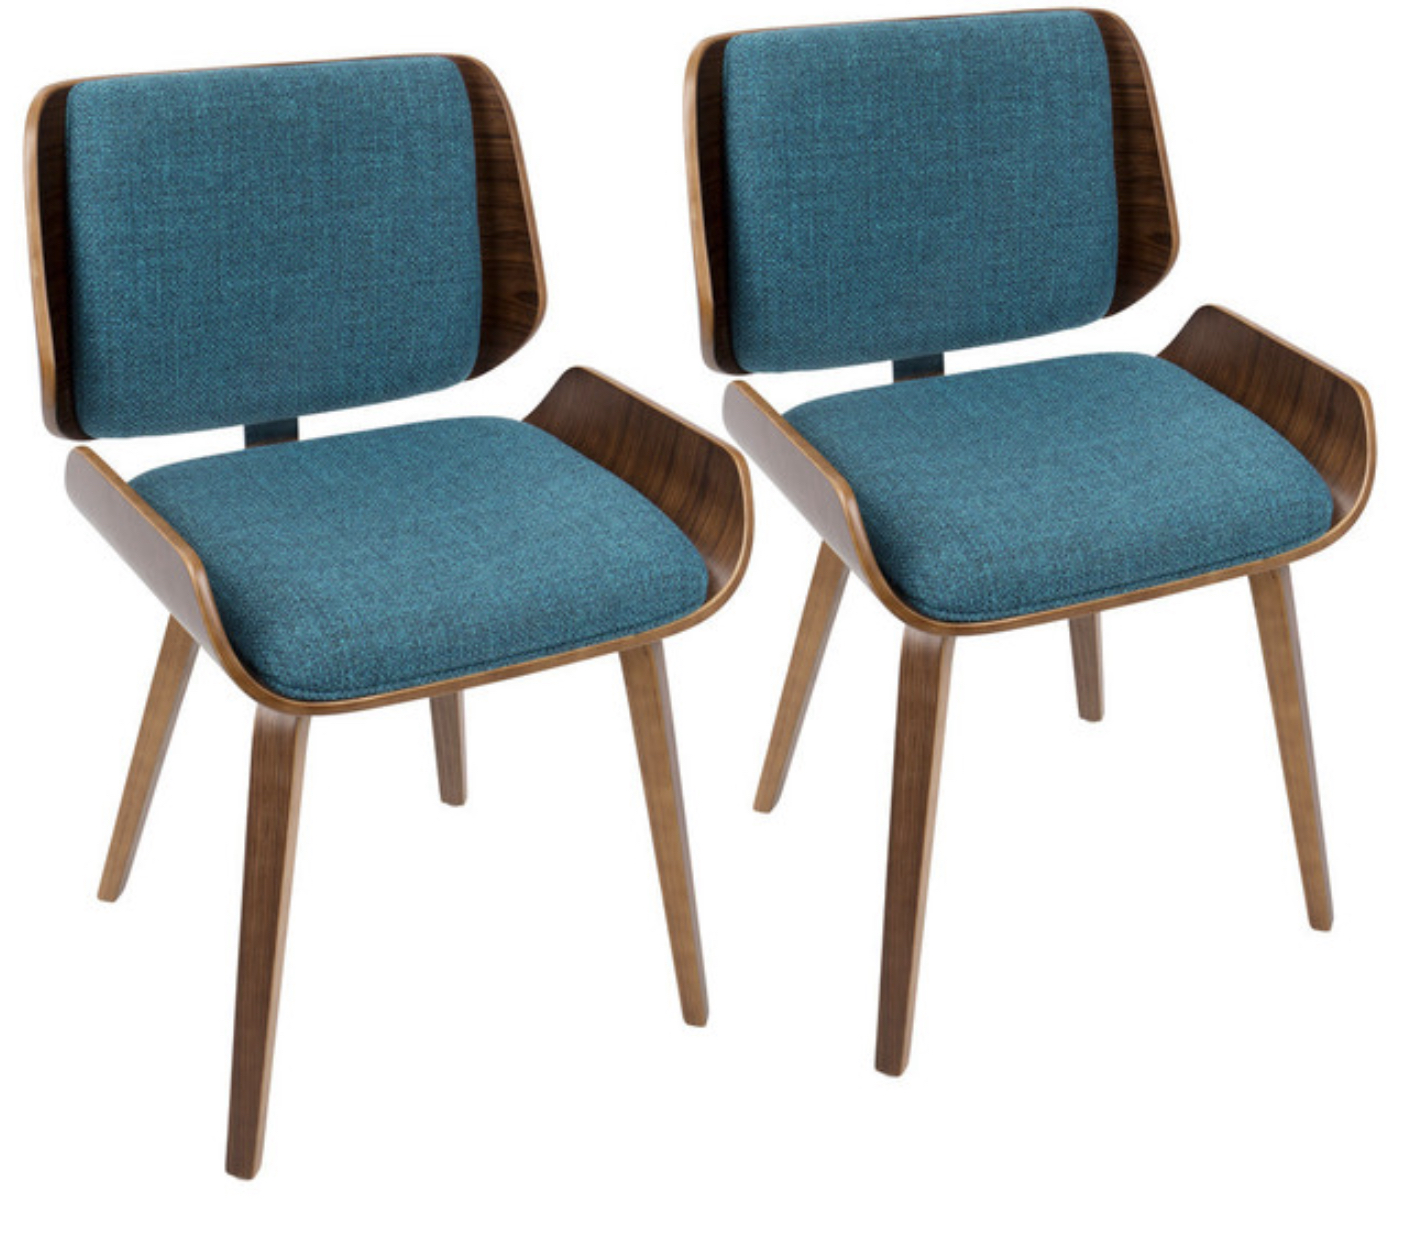 lumisource-santi-set-of-2-chairs